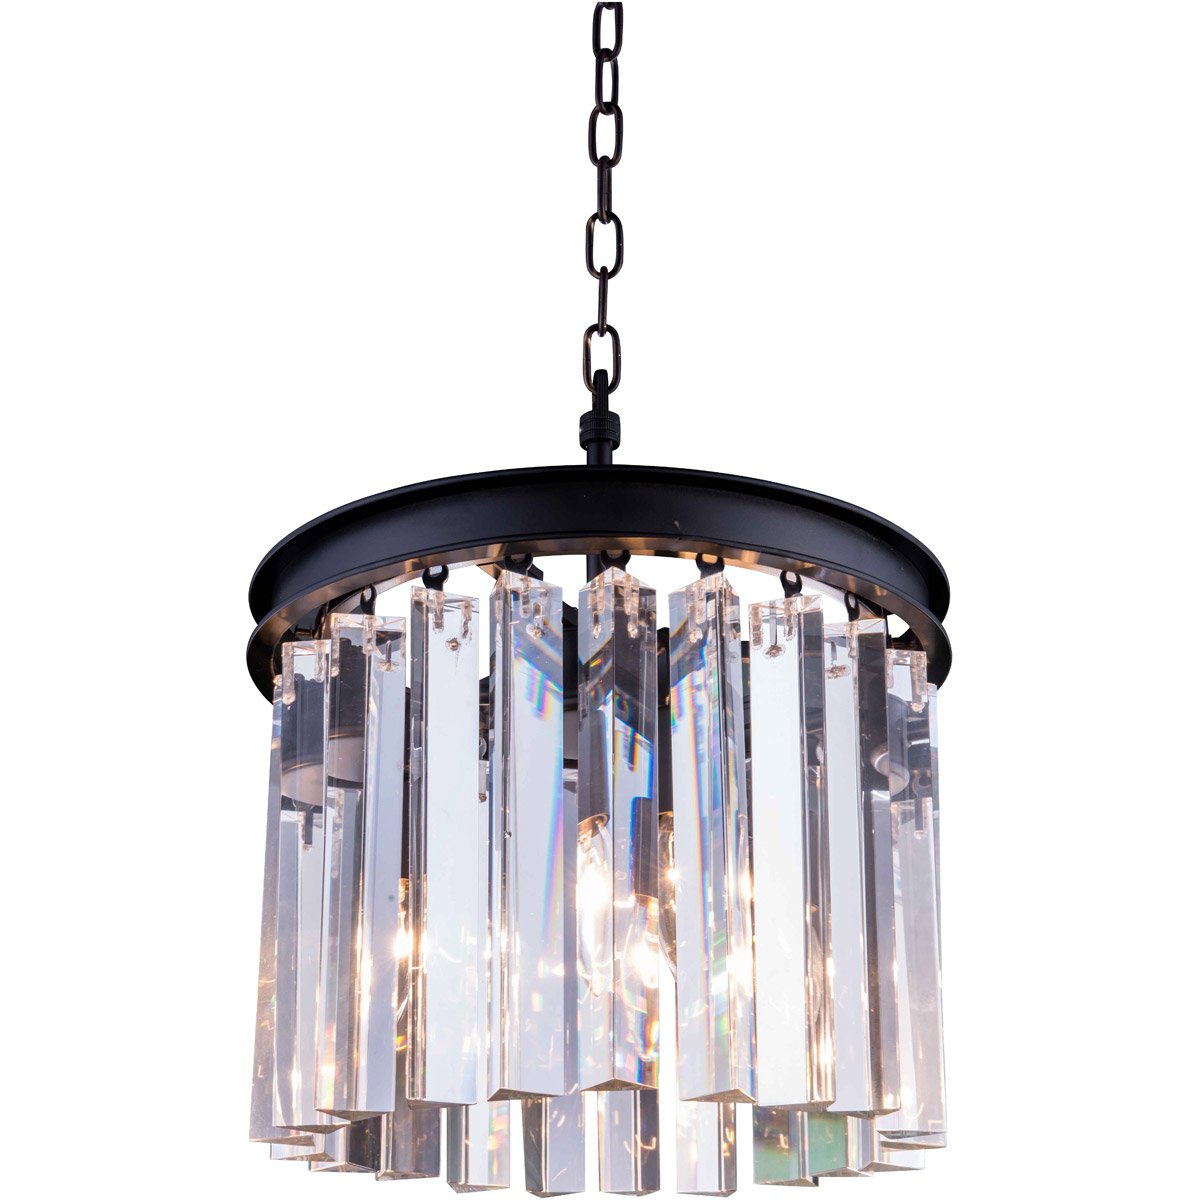 Sydney 12 Crystal Mini Pendant With 3 Lights - Matte Black Finish And Clear Crystal Pendant